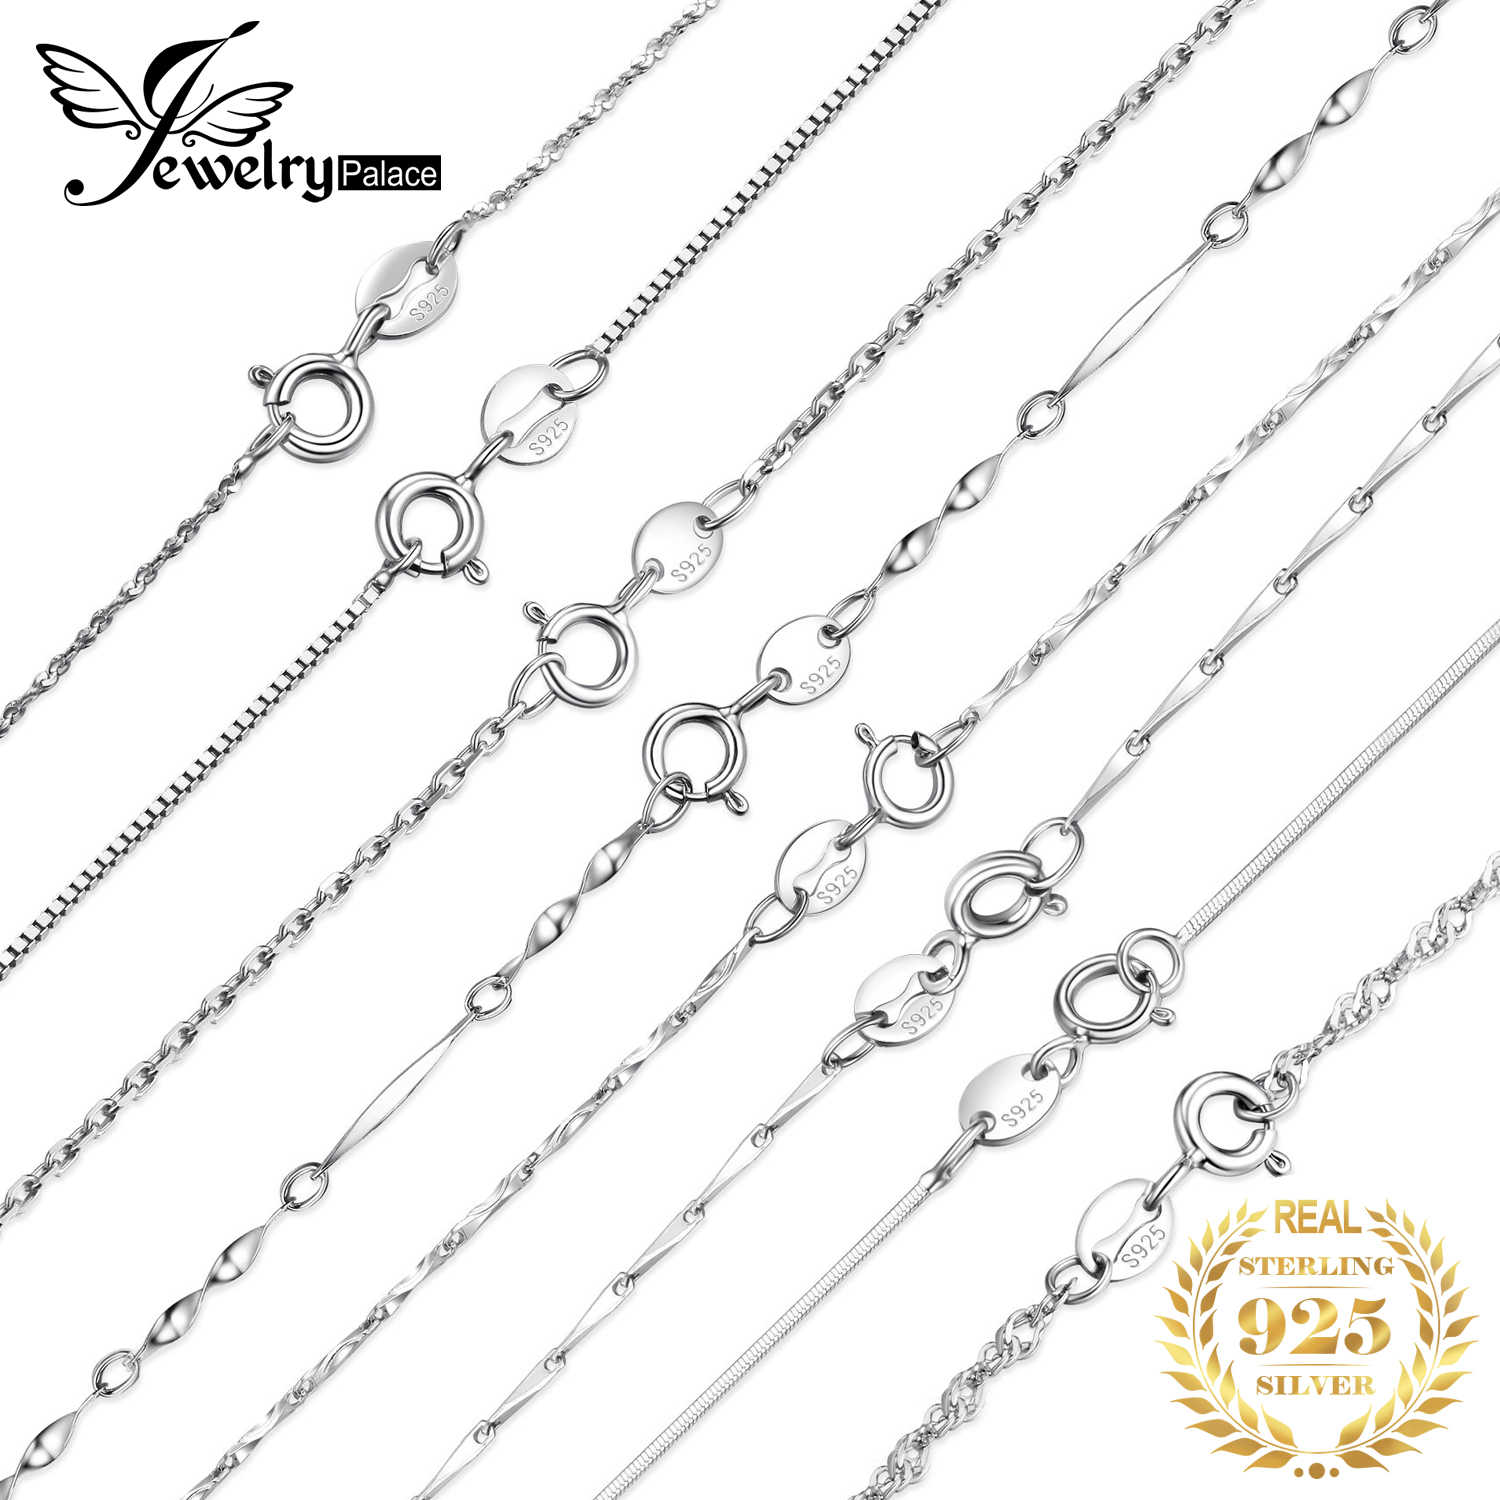 JewelryPalace 100% Real 925 Sterling Silver Necklace Ingot Twisted Trace Belcher Snake Bar Singapore Box Chain Necklace Women